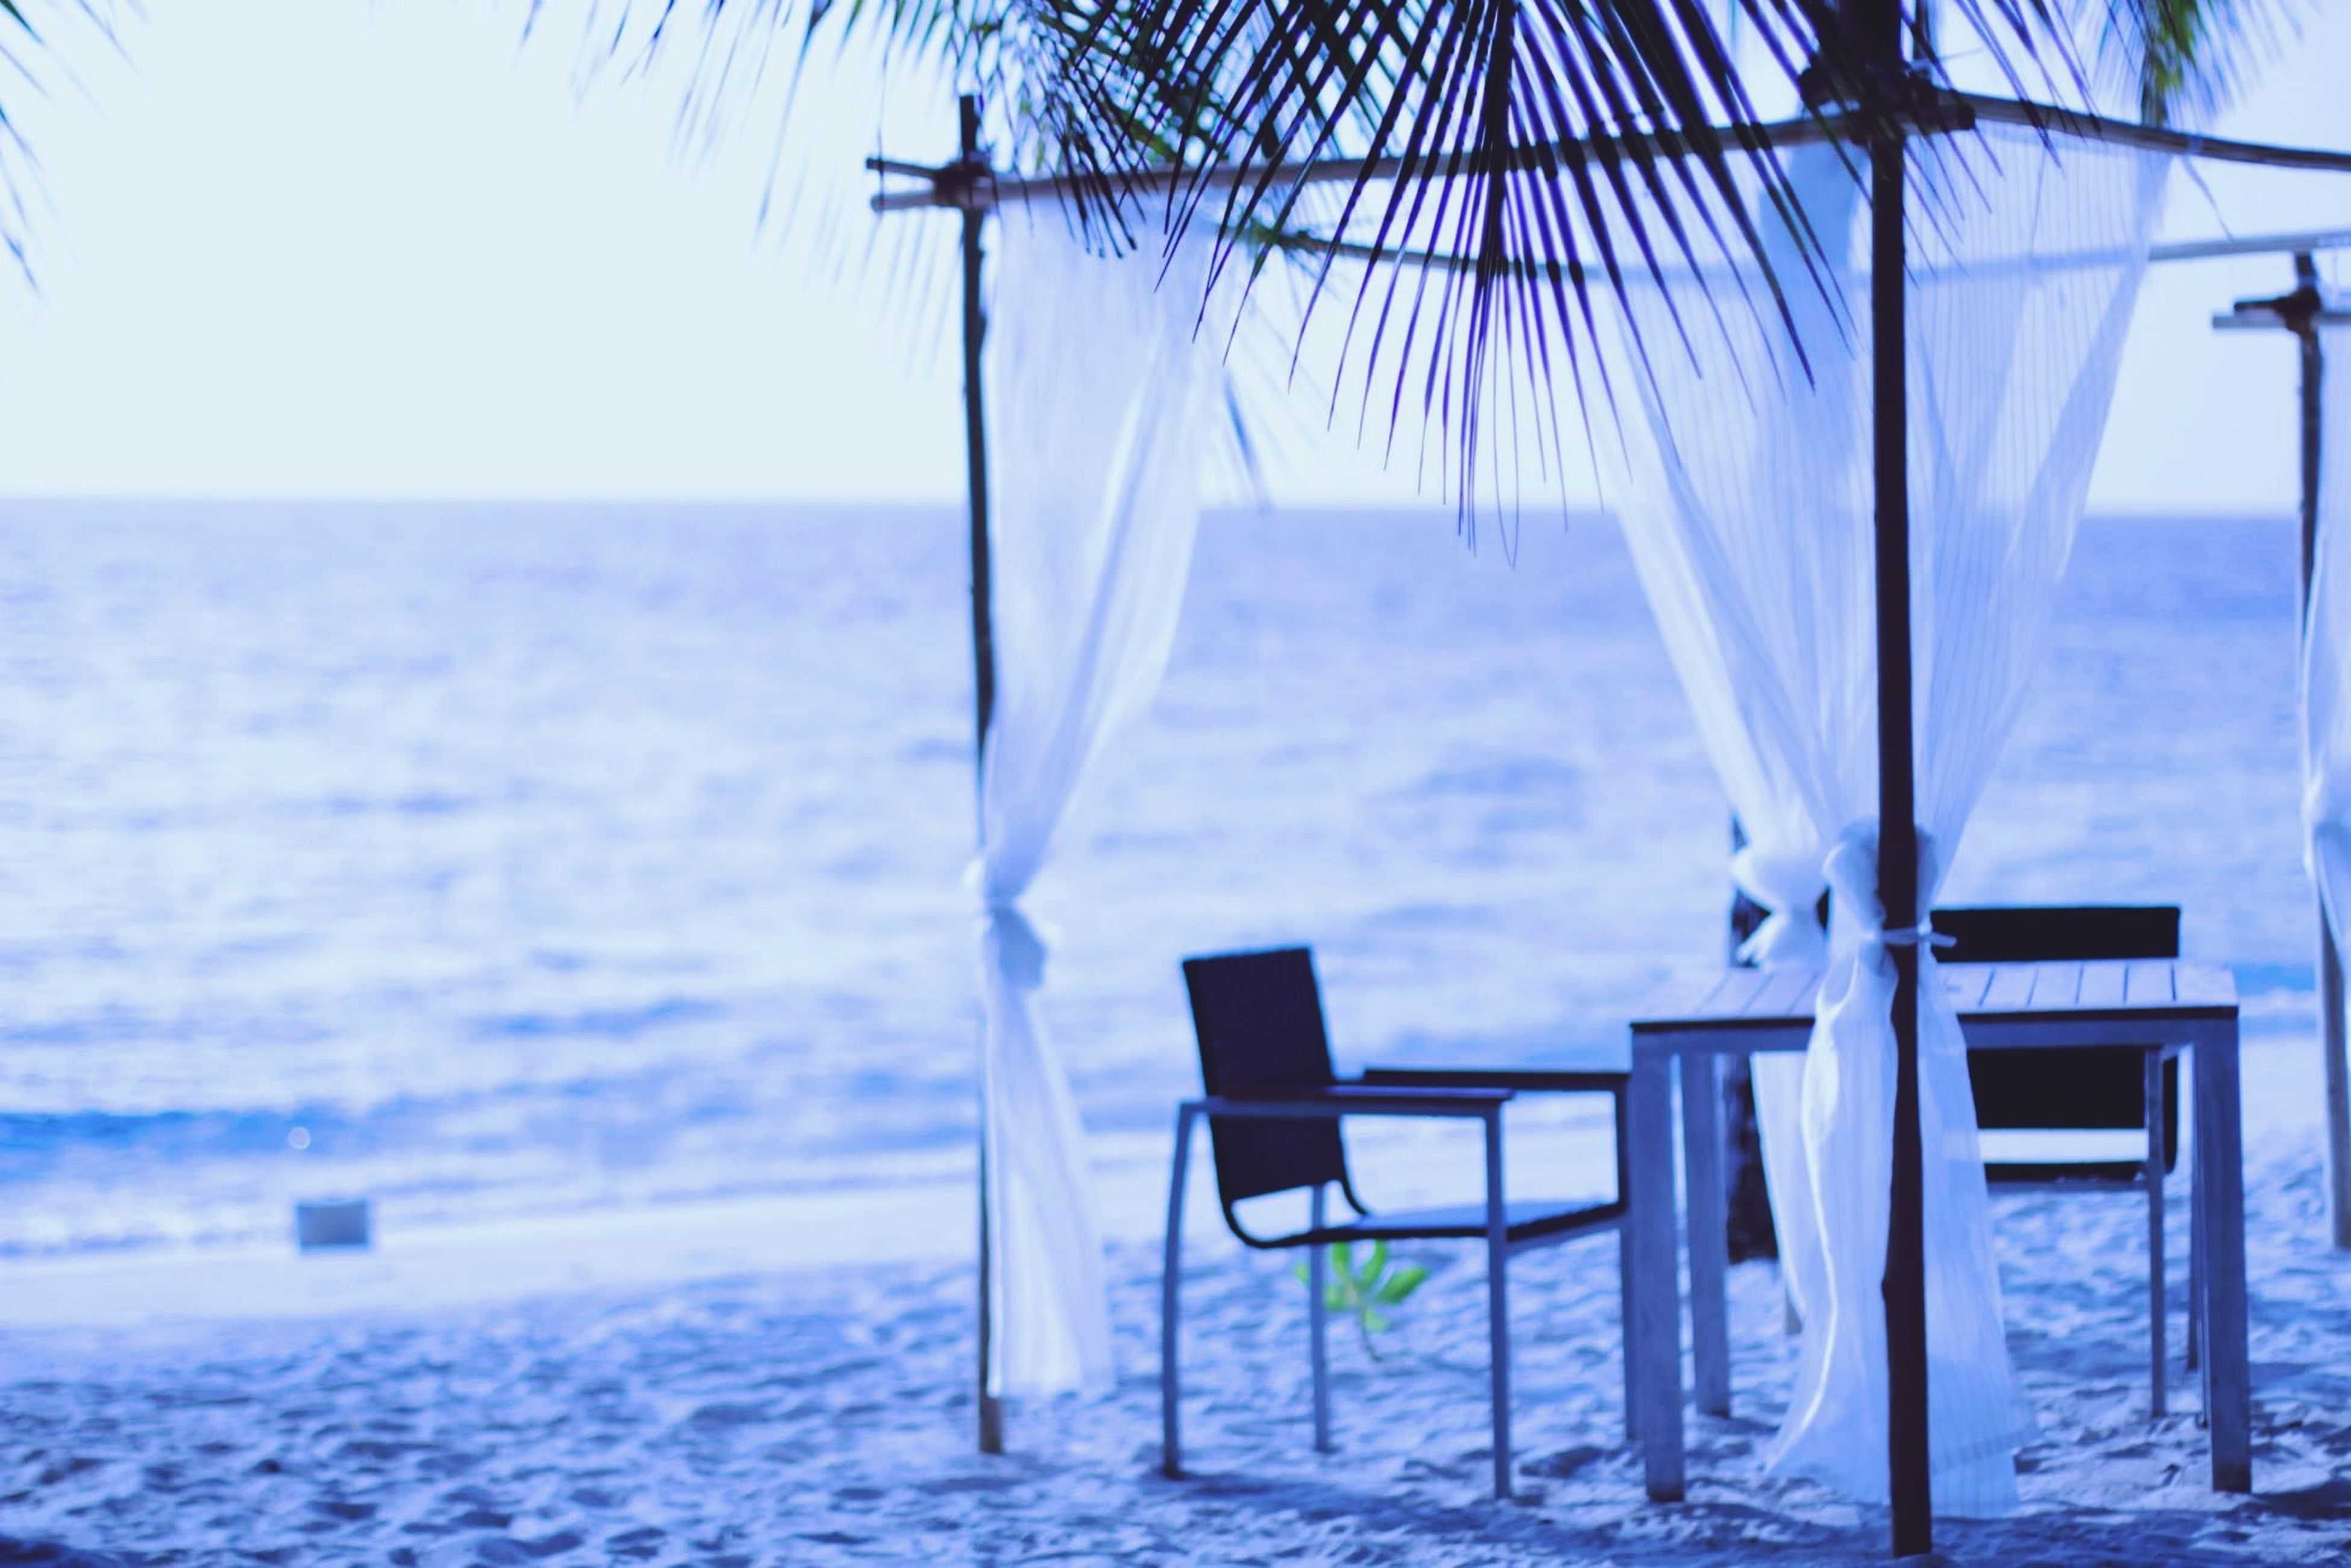 sea, chair, absence, empty, horizon over water, water, beach, table, tranquility, tranquil scene, seat, bench, sand, scenics, relaxation, sunlight, nature, beach umbrella, vacations, shore